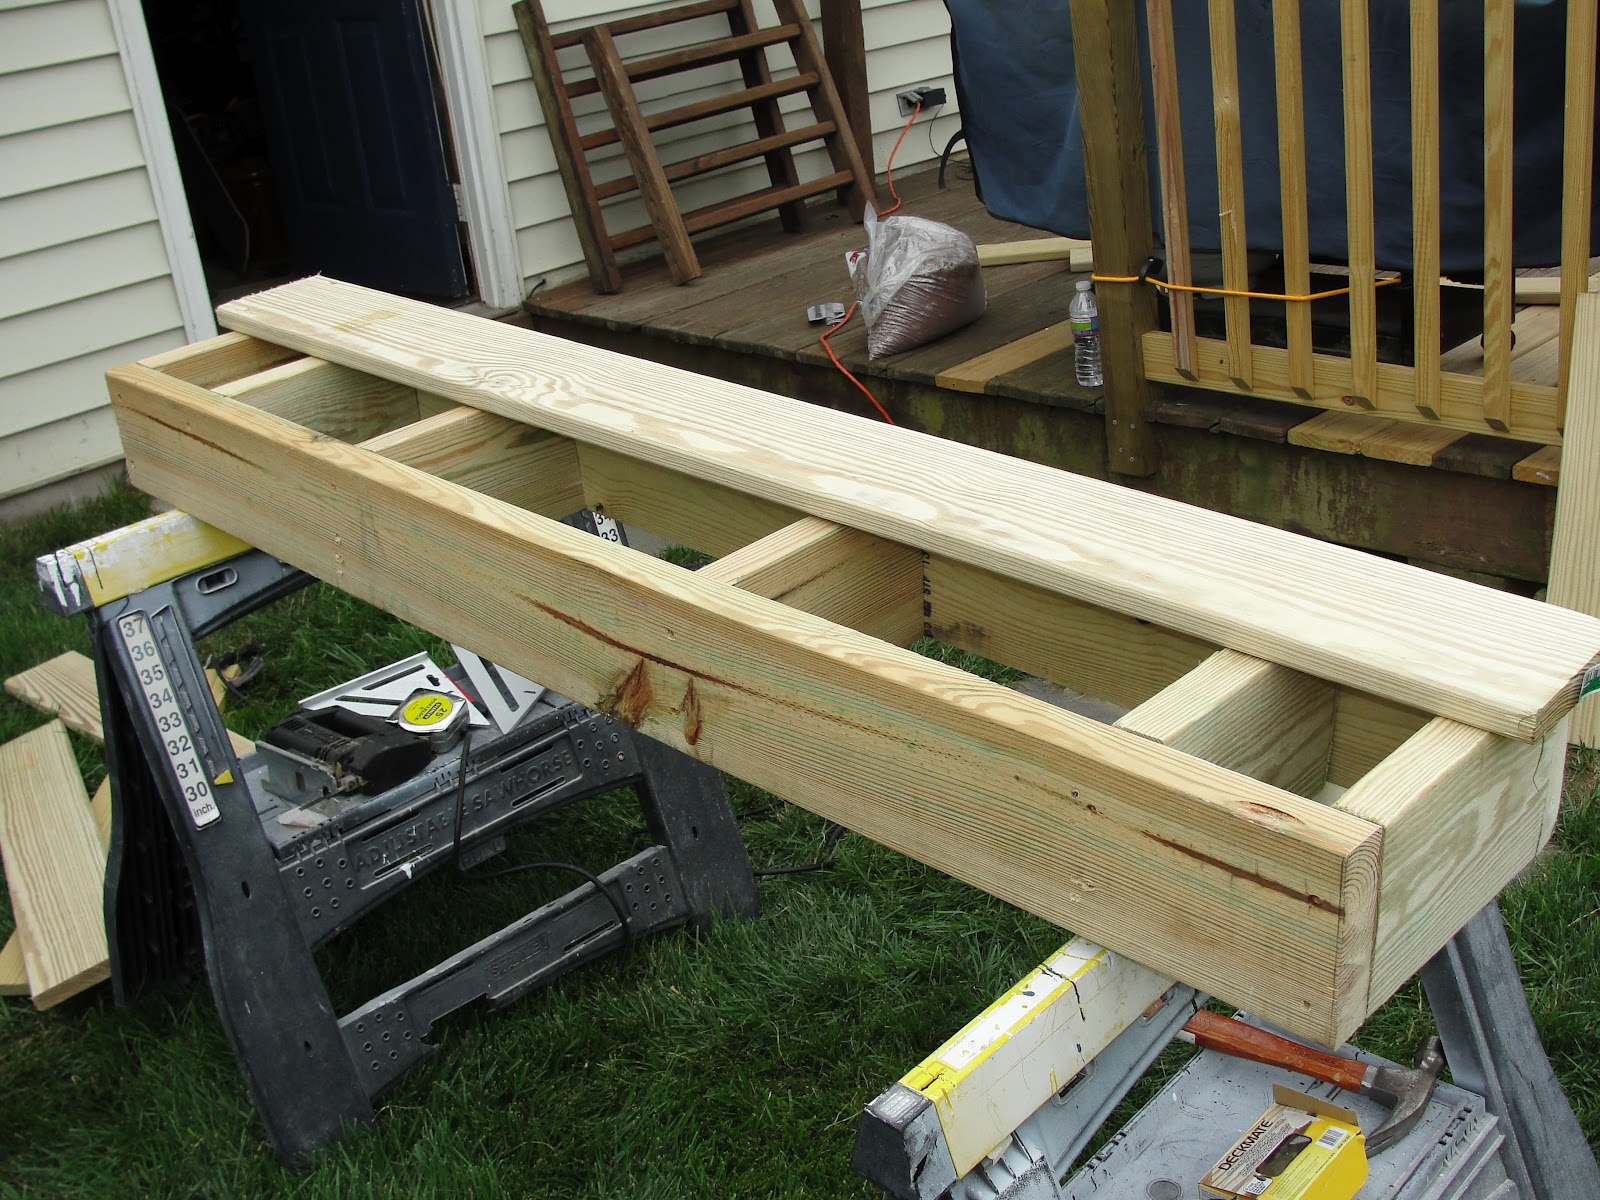 Lessons from the garden building a box step for the deck for How to frame a house step by step